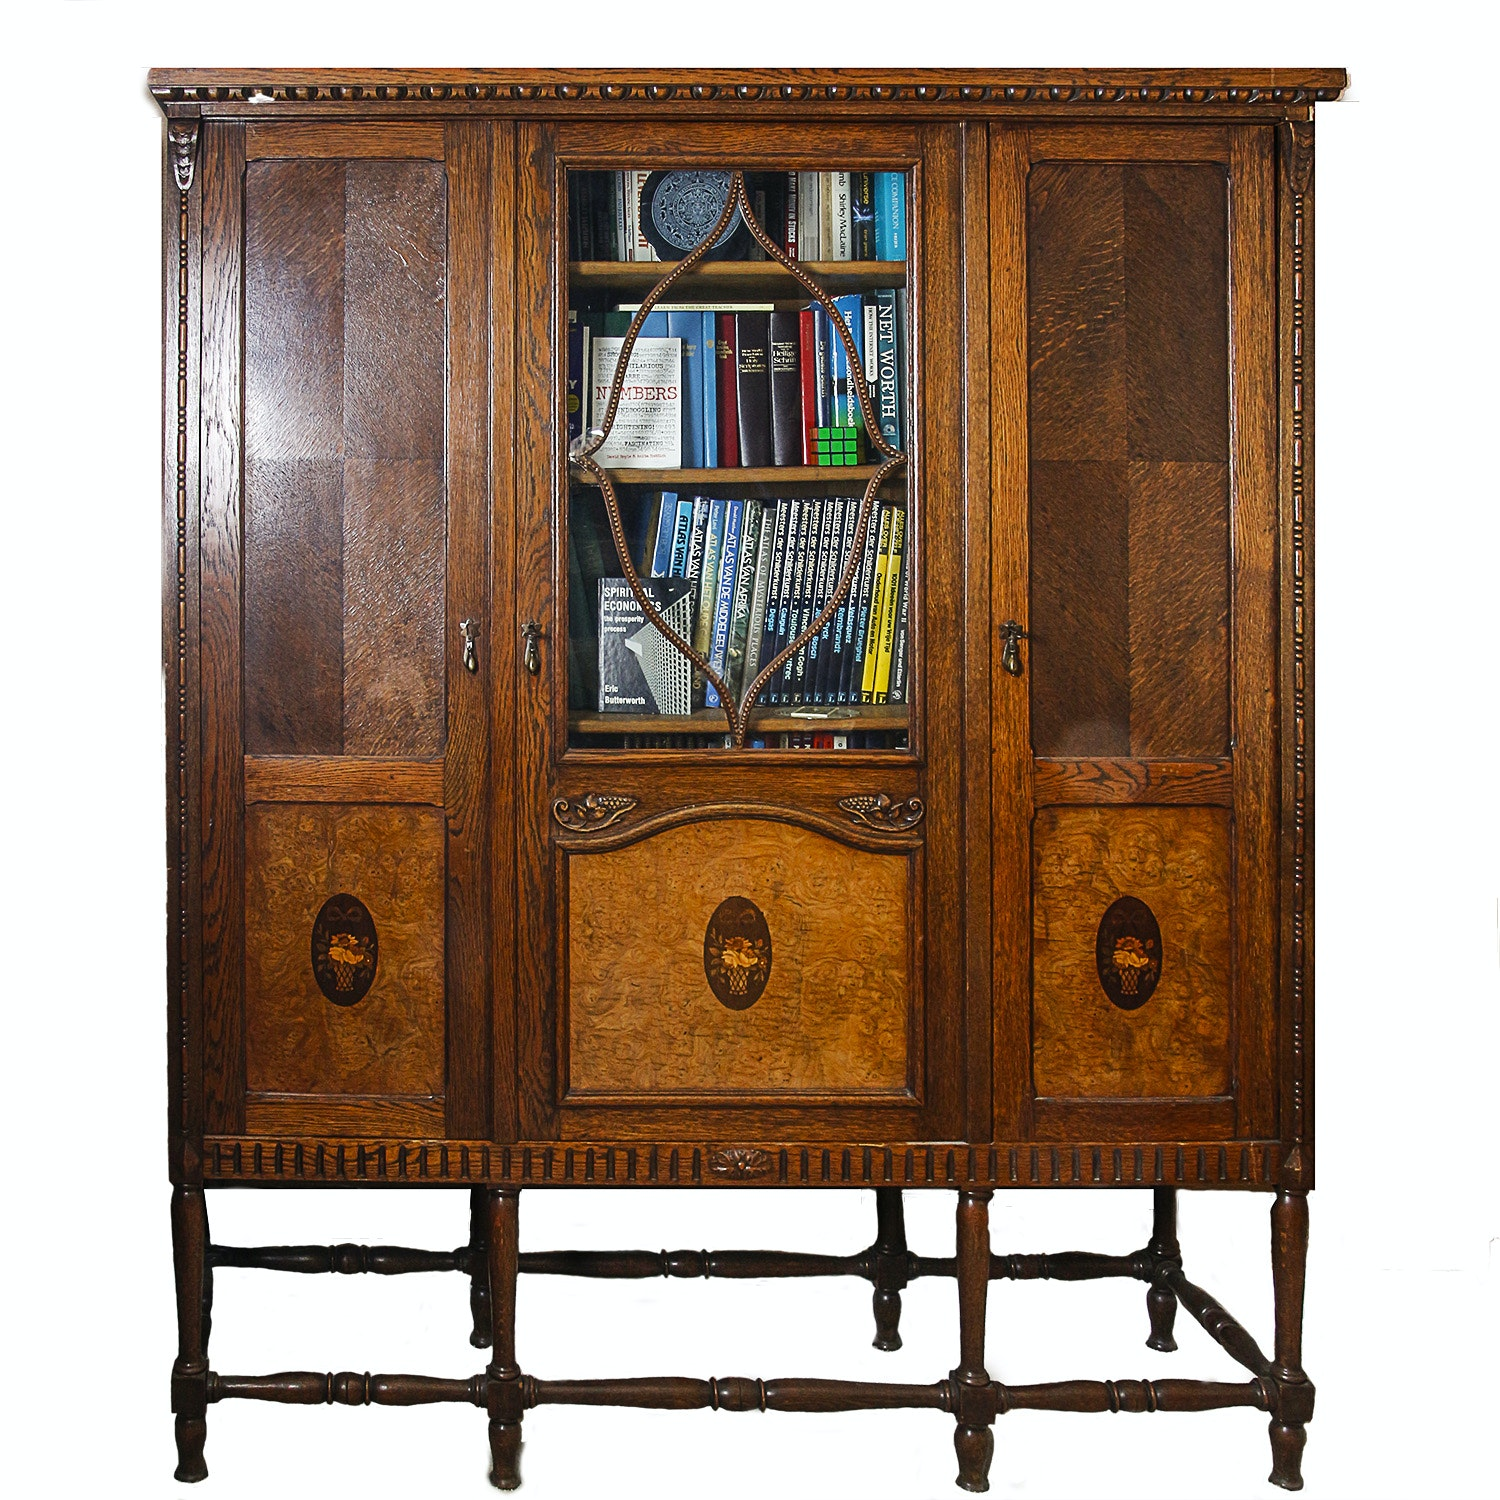 Vintage Jacobean Revival Cabinet-on-Stand with Neoclassical Inlays